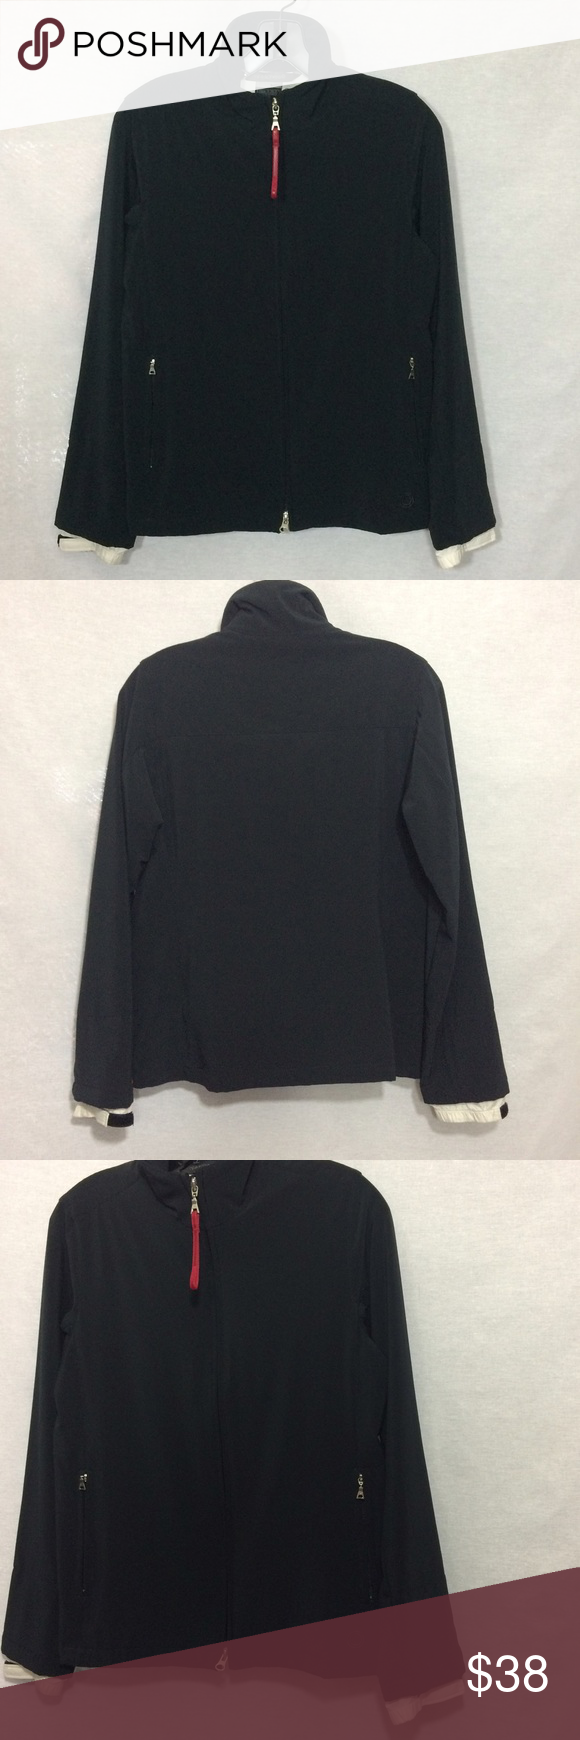 """Nike Sphere Running Jacket Perfect for those crisp early morning runs. Jacket features two outside zipper pockets, 2 interior pockets (pic 4) and contrasting, adjustable sleeve cuffs (pic 2). 23.5"""" length. Good, used condition - no rips, holes or stains. Nike Jackets & Coats"""